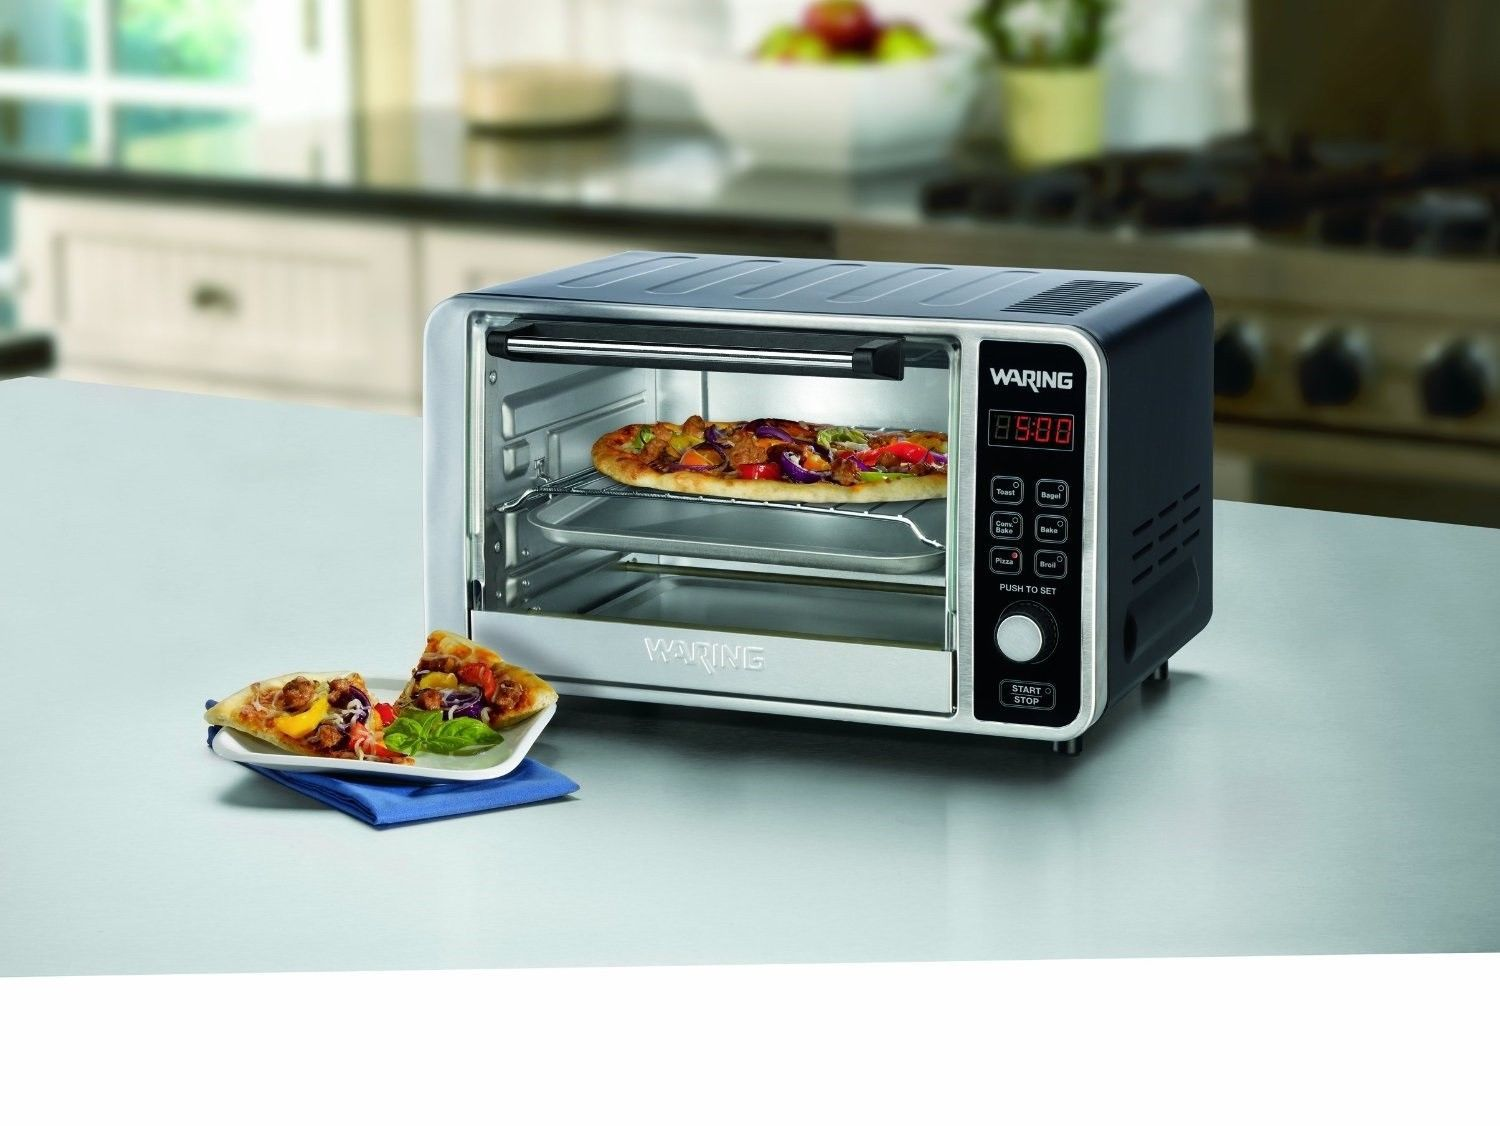 Waring Pro Digital Convection Oven, Toaster , Broil, Bake - Infrared ...